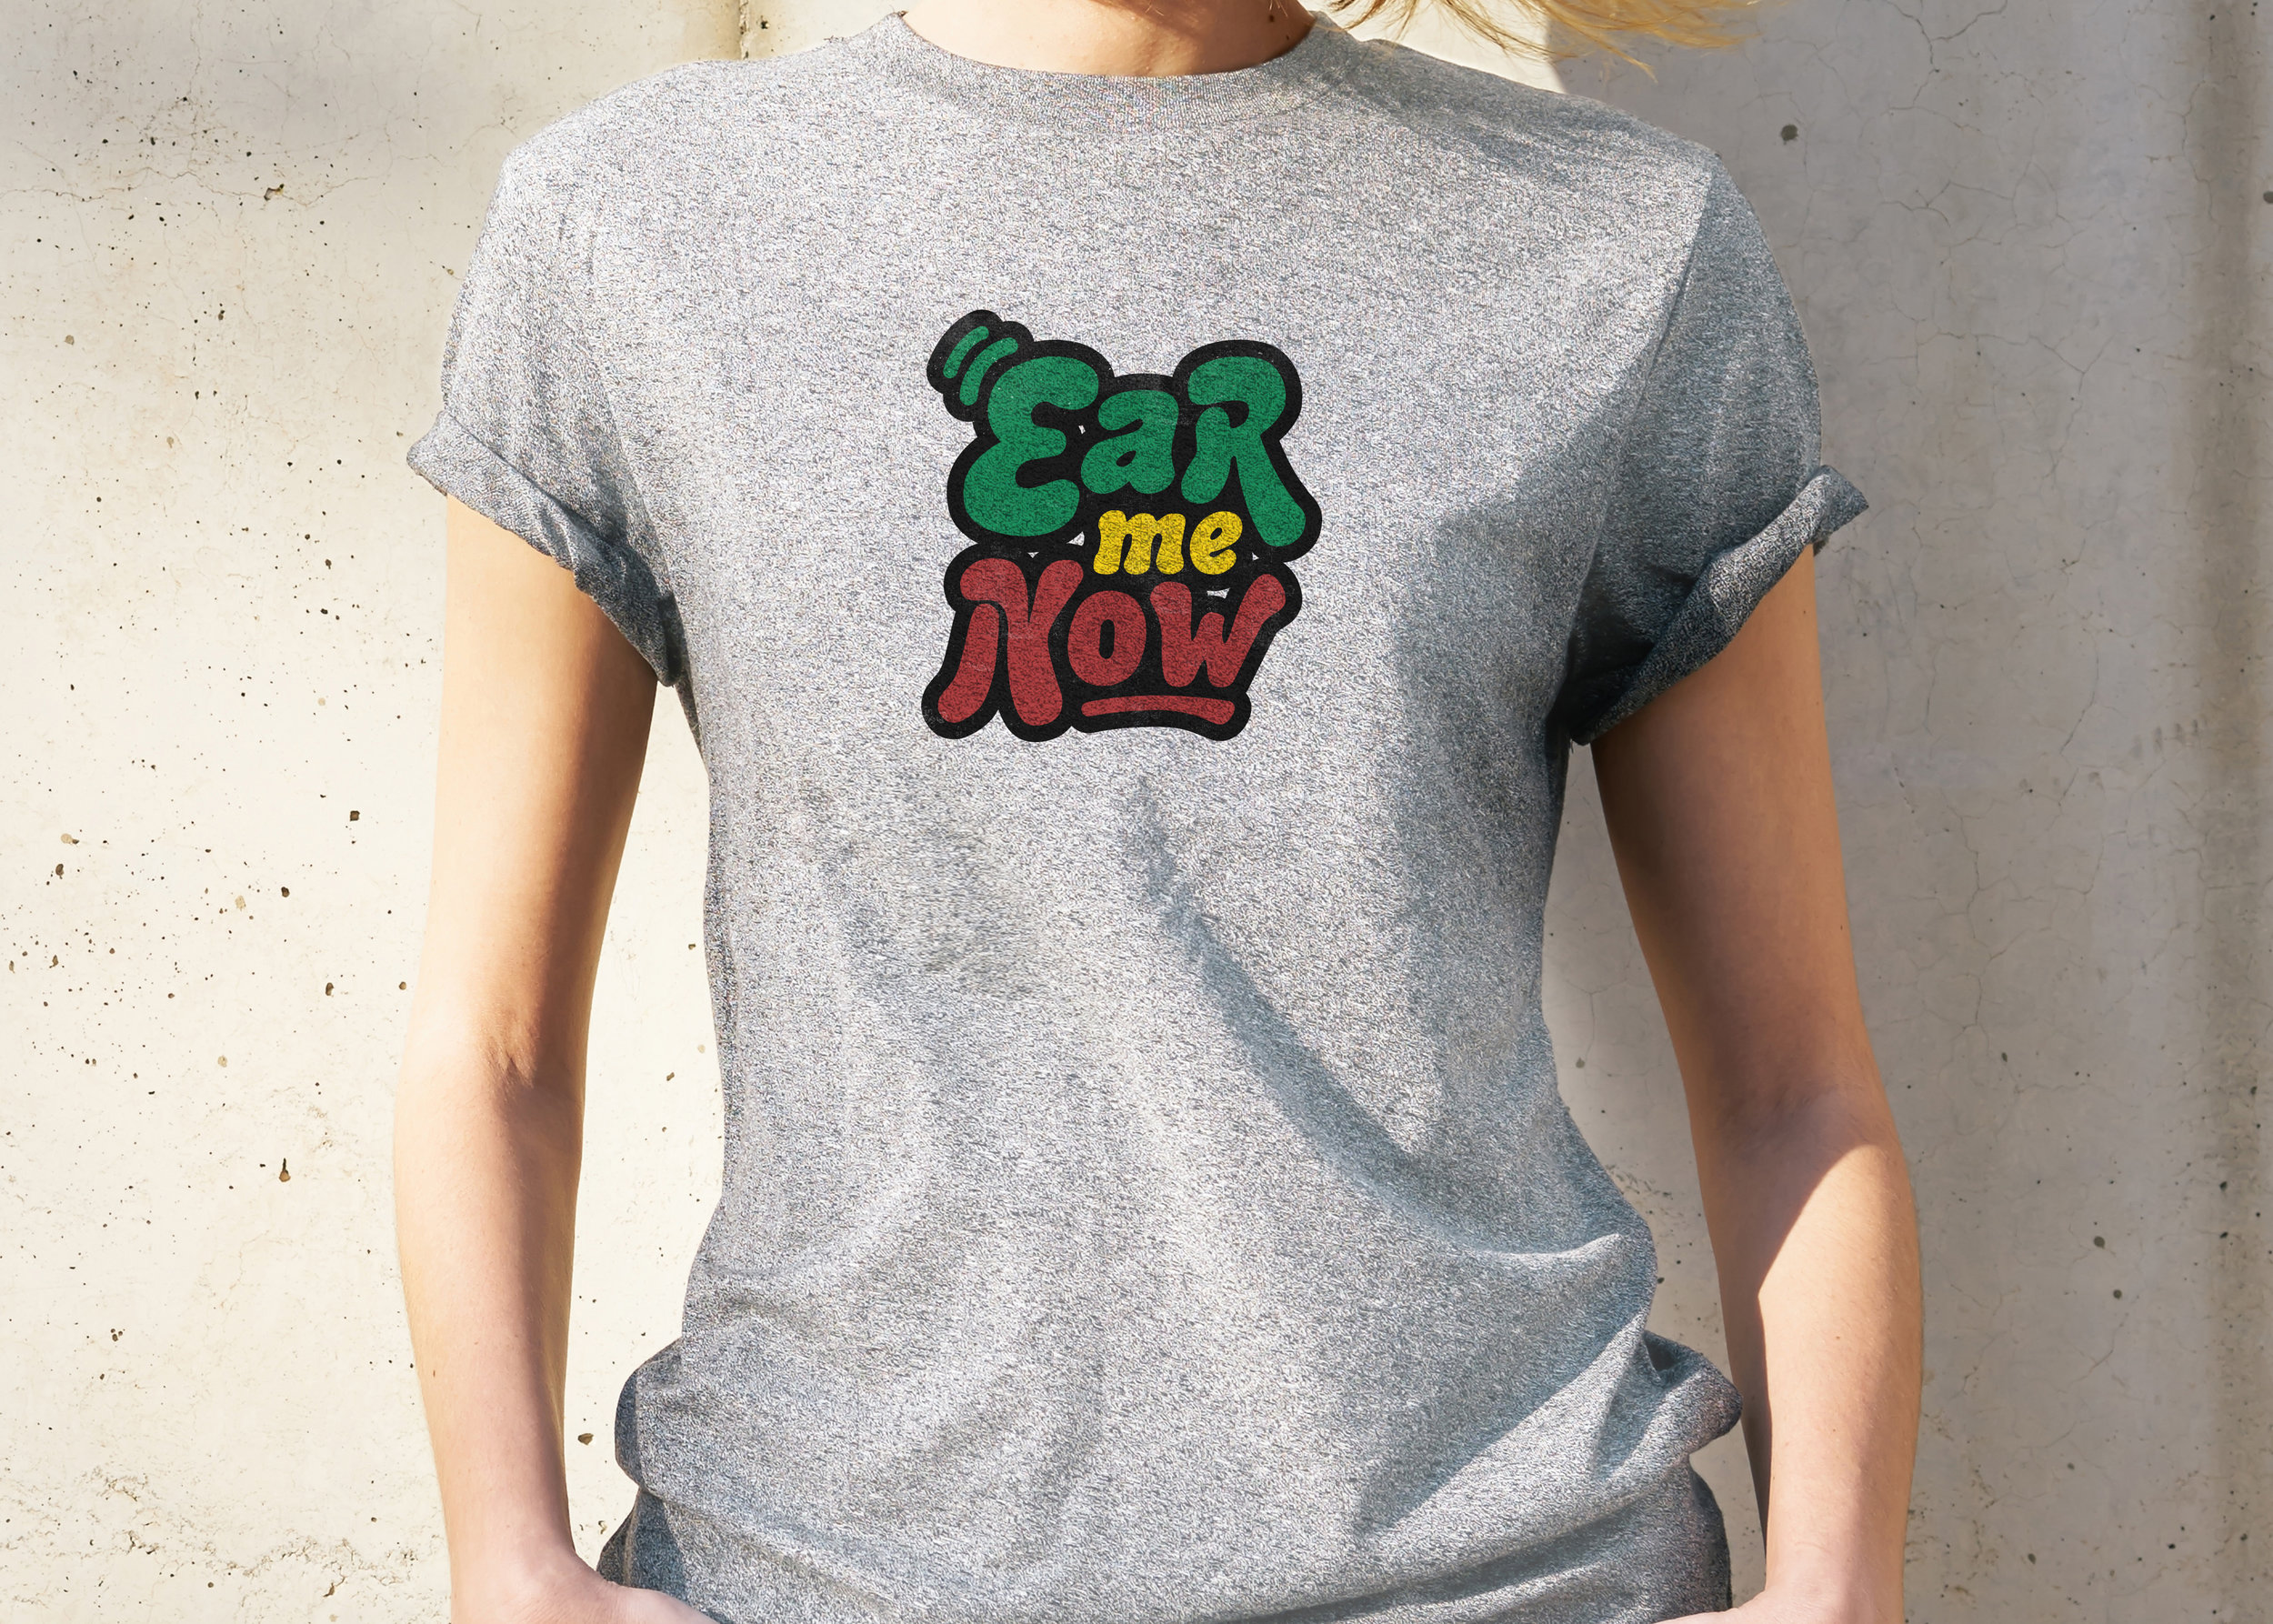 Ear Me Now Band shirt